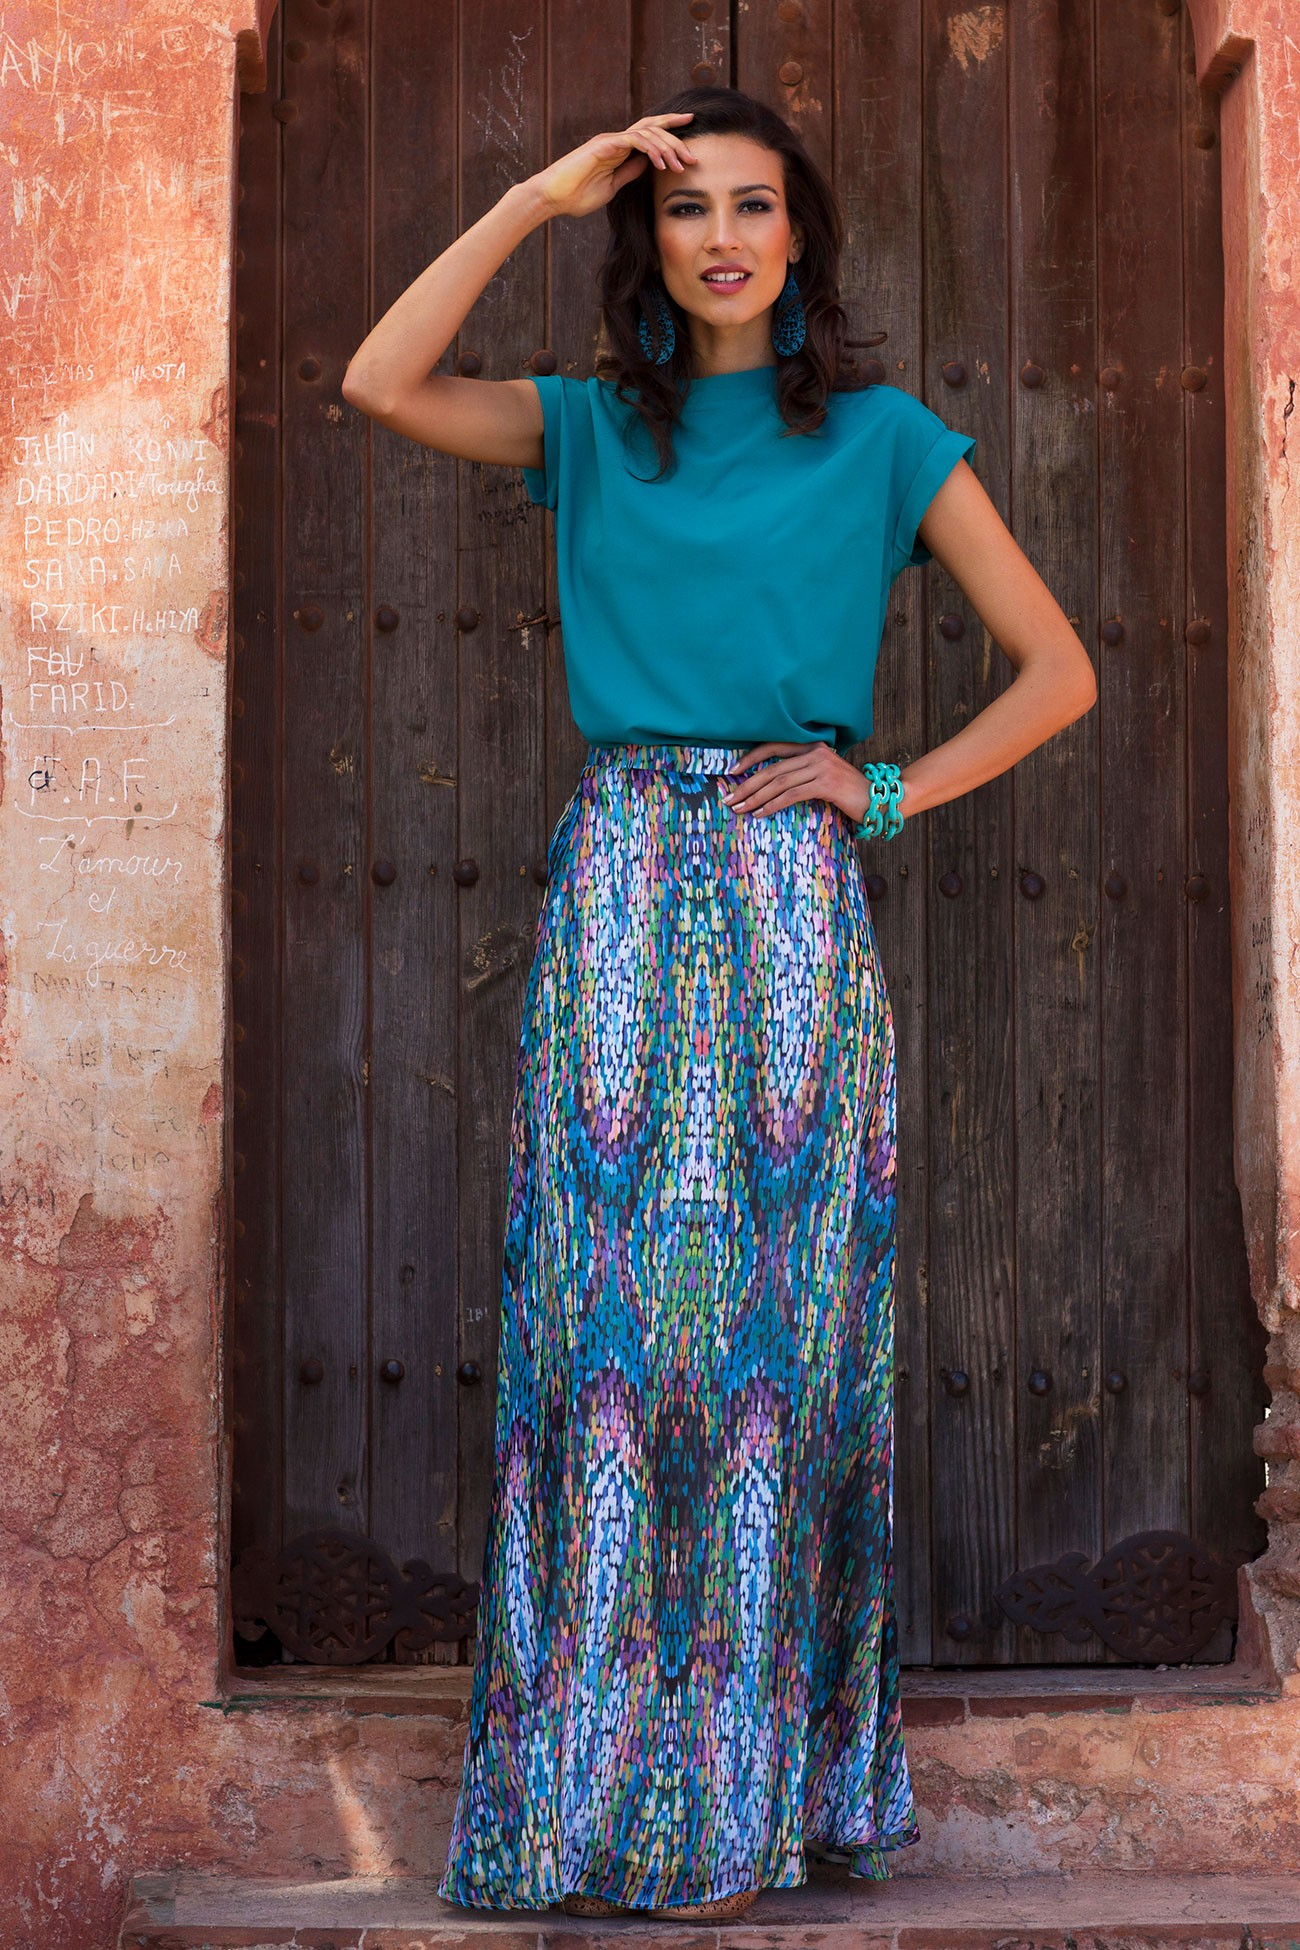 Colorful Mosaic Maxi Skirt from the Marrakech Collection by Shabby Apple